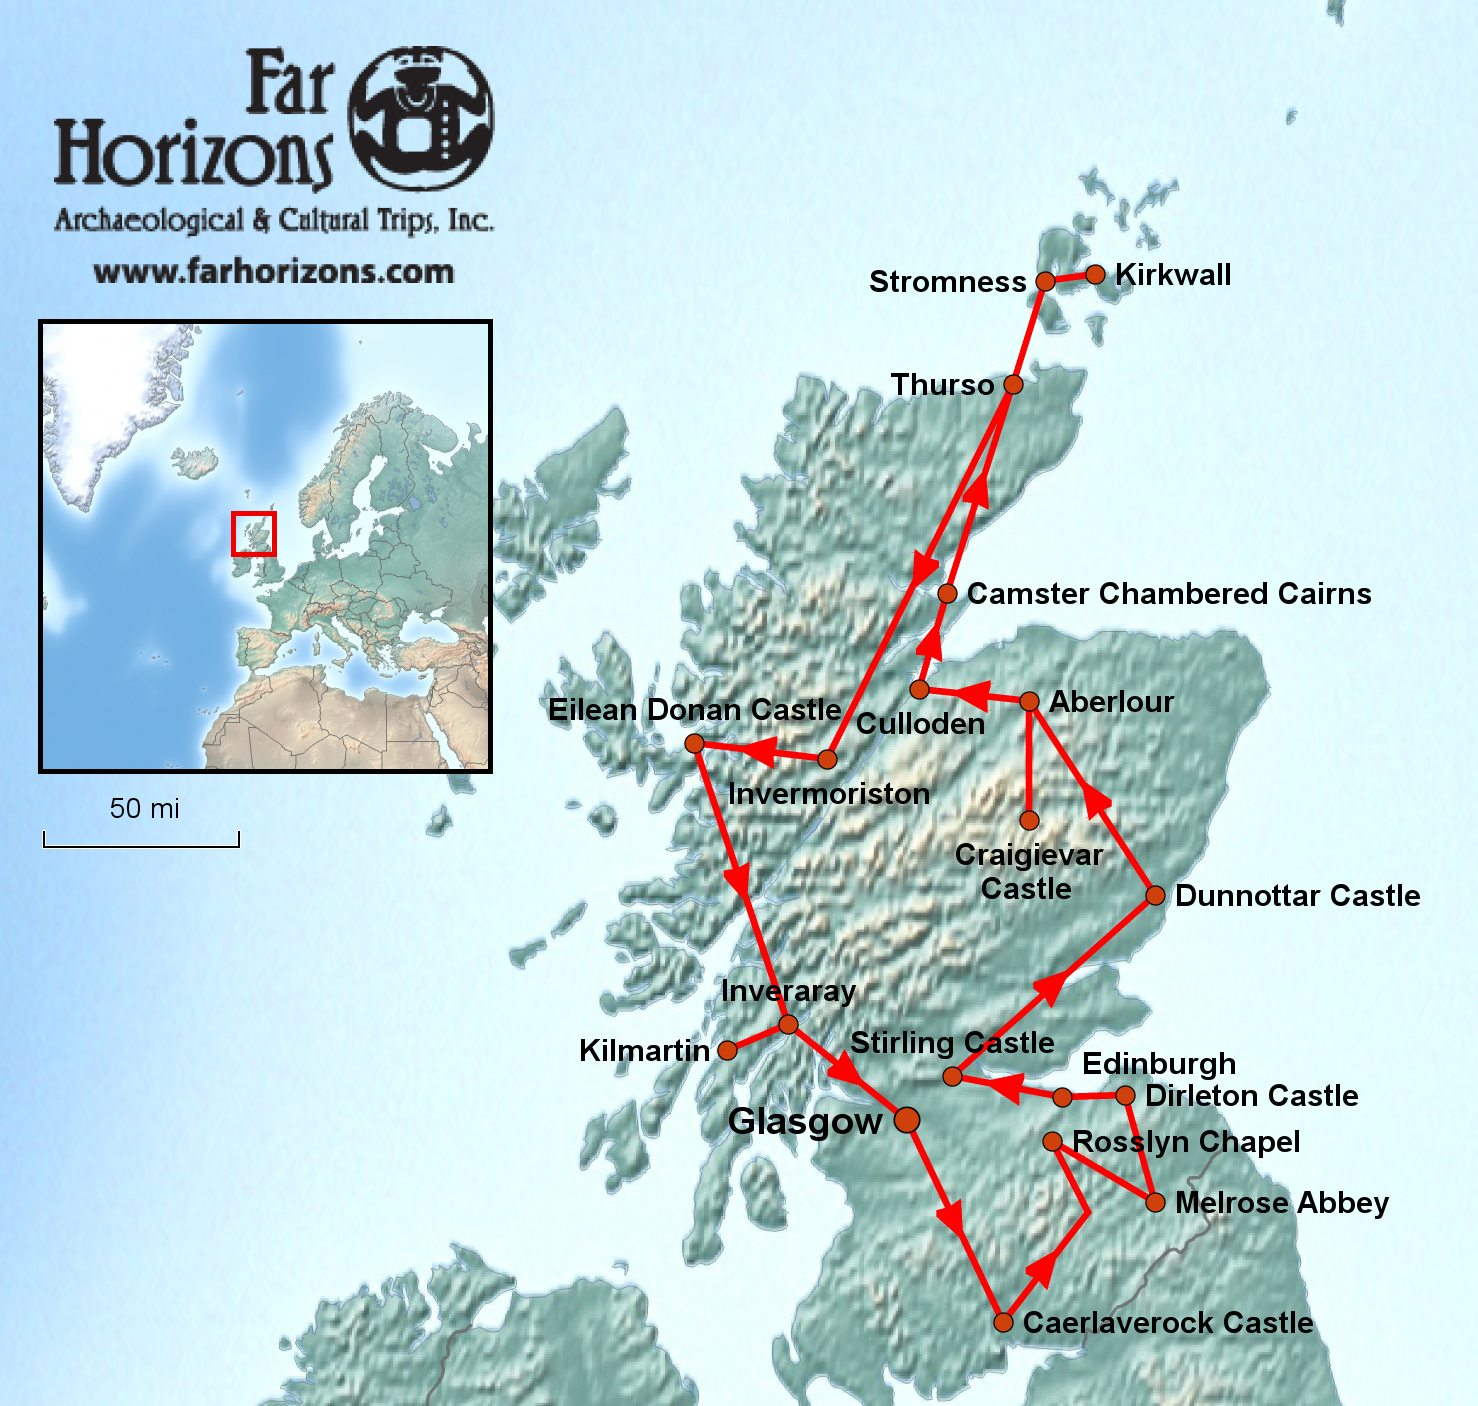 Scotland Tour: Riches of the Scottish Highlands & Lowlands